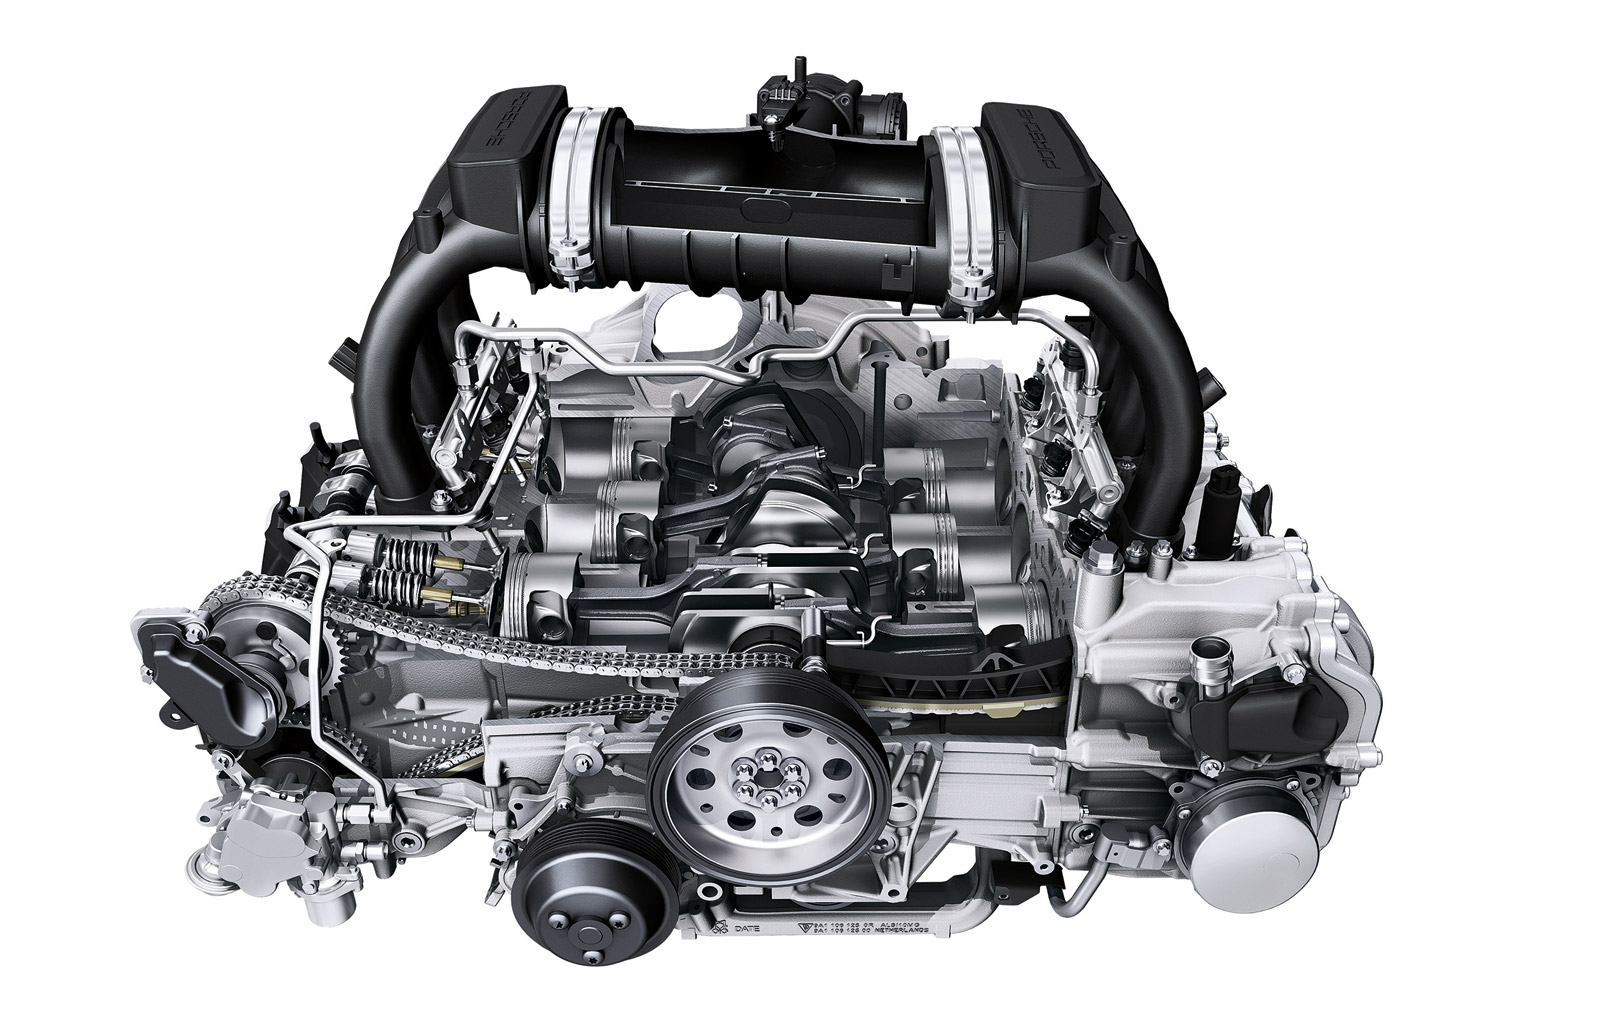 porsche 911 engine diagram of parts science diagrams class 10 first details on porsches new four cylinder boxer 360 hp